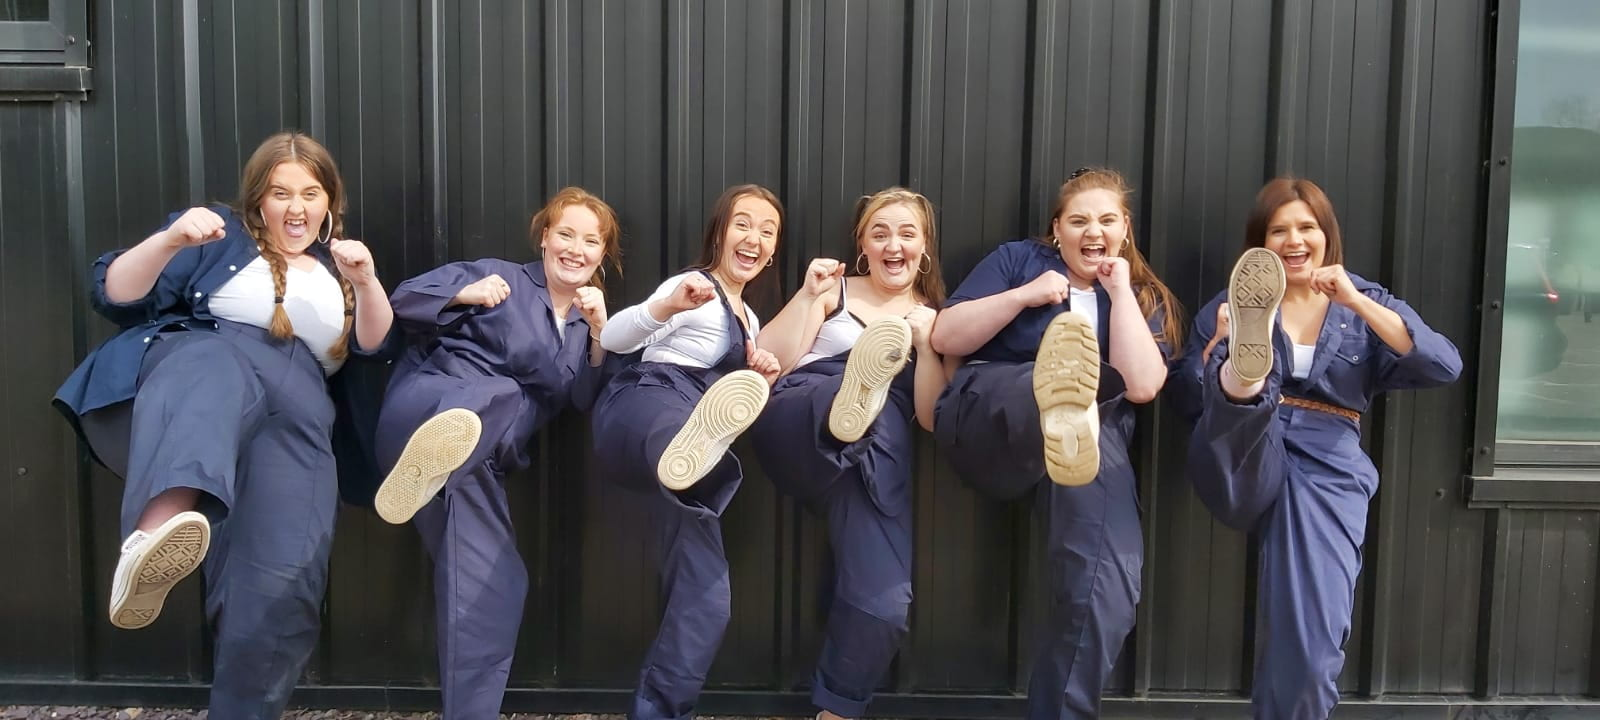 Image contains six women kicking their feet up to the camera. All dressed in men's workwear.